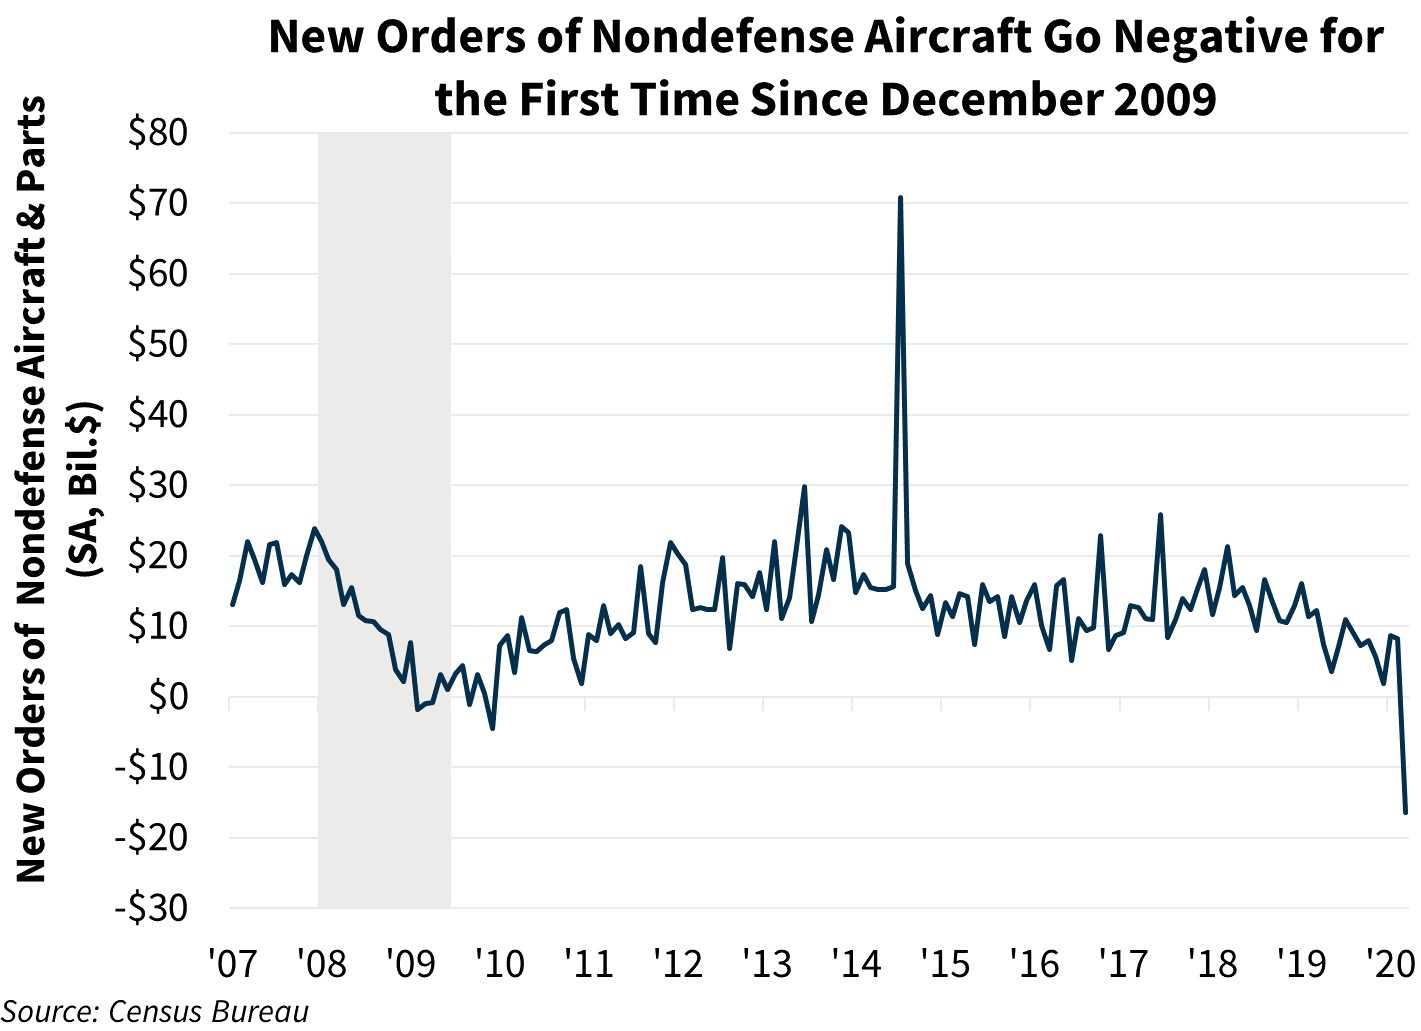 New Orders of Nondefense Aircraft Go Negative for the First Time Since December 2009